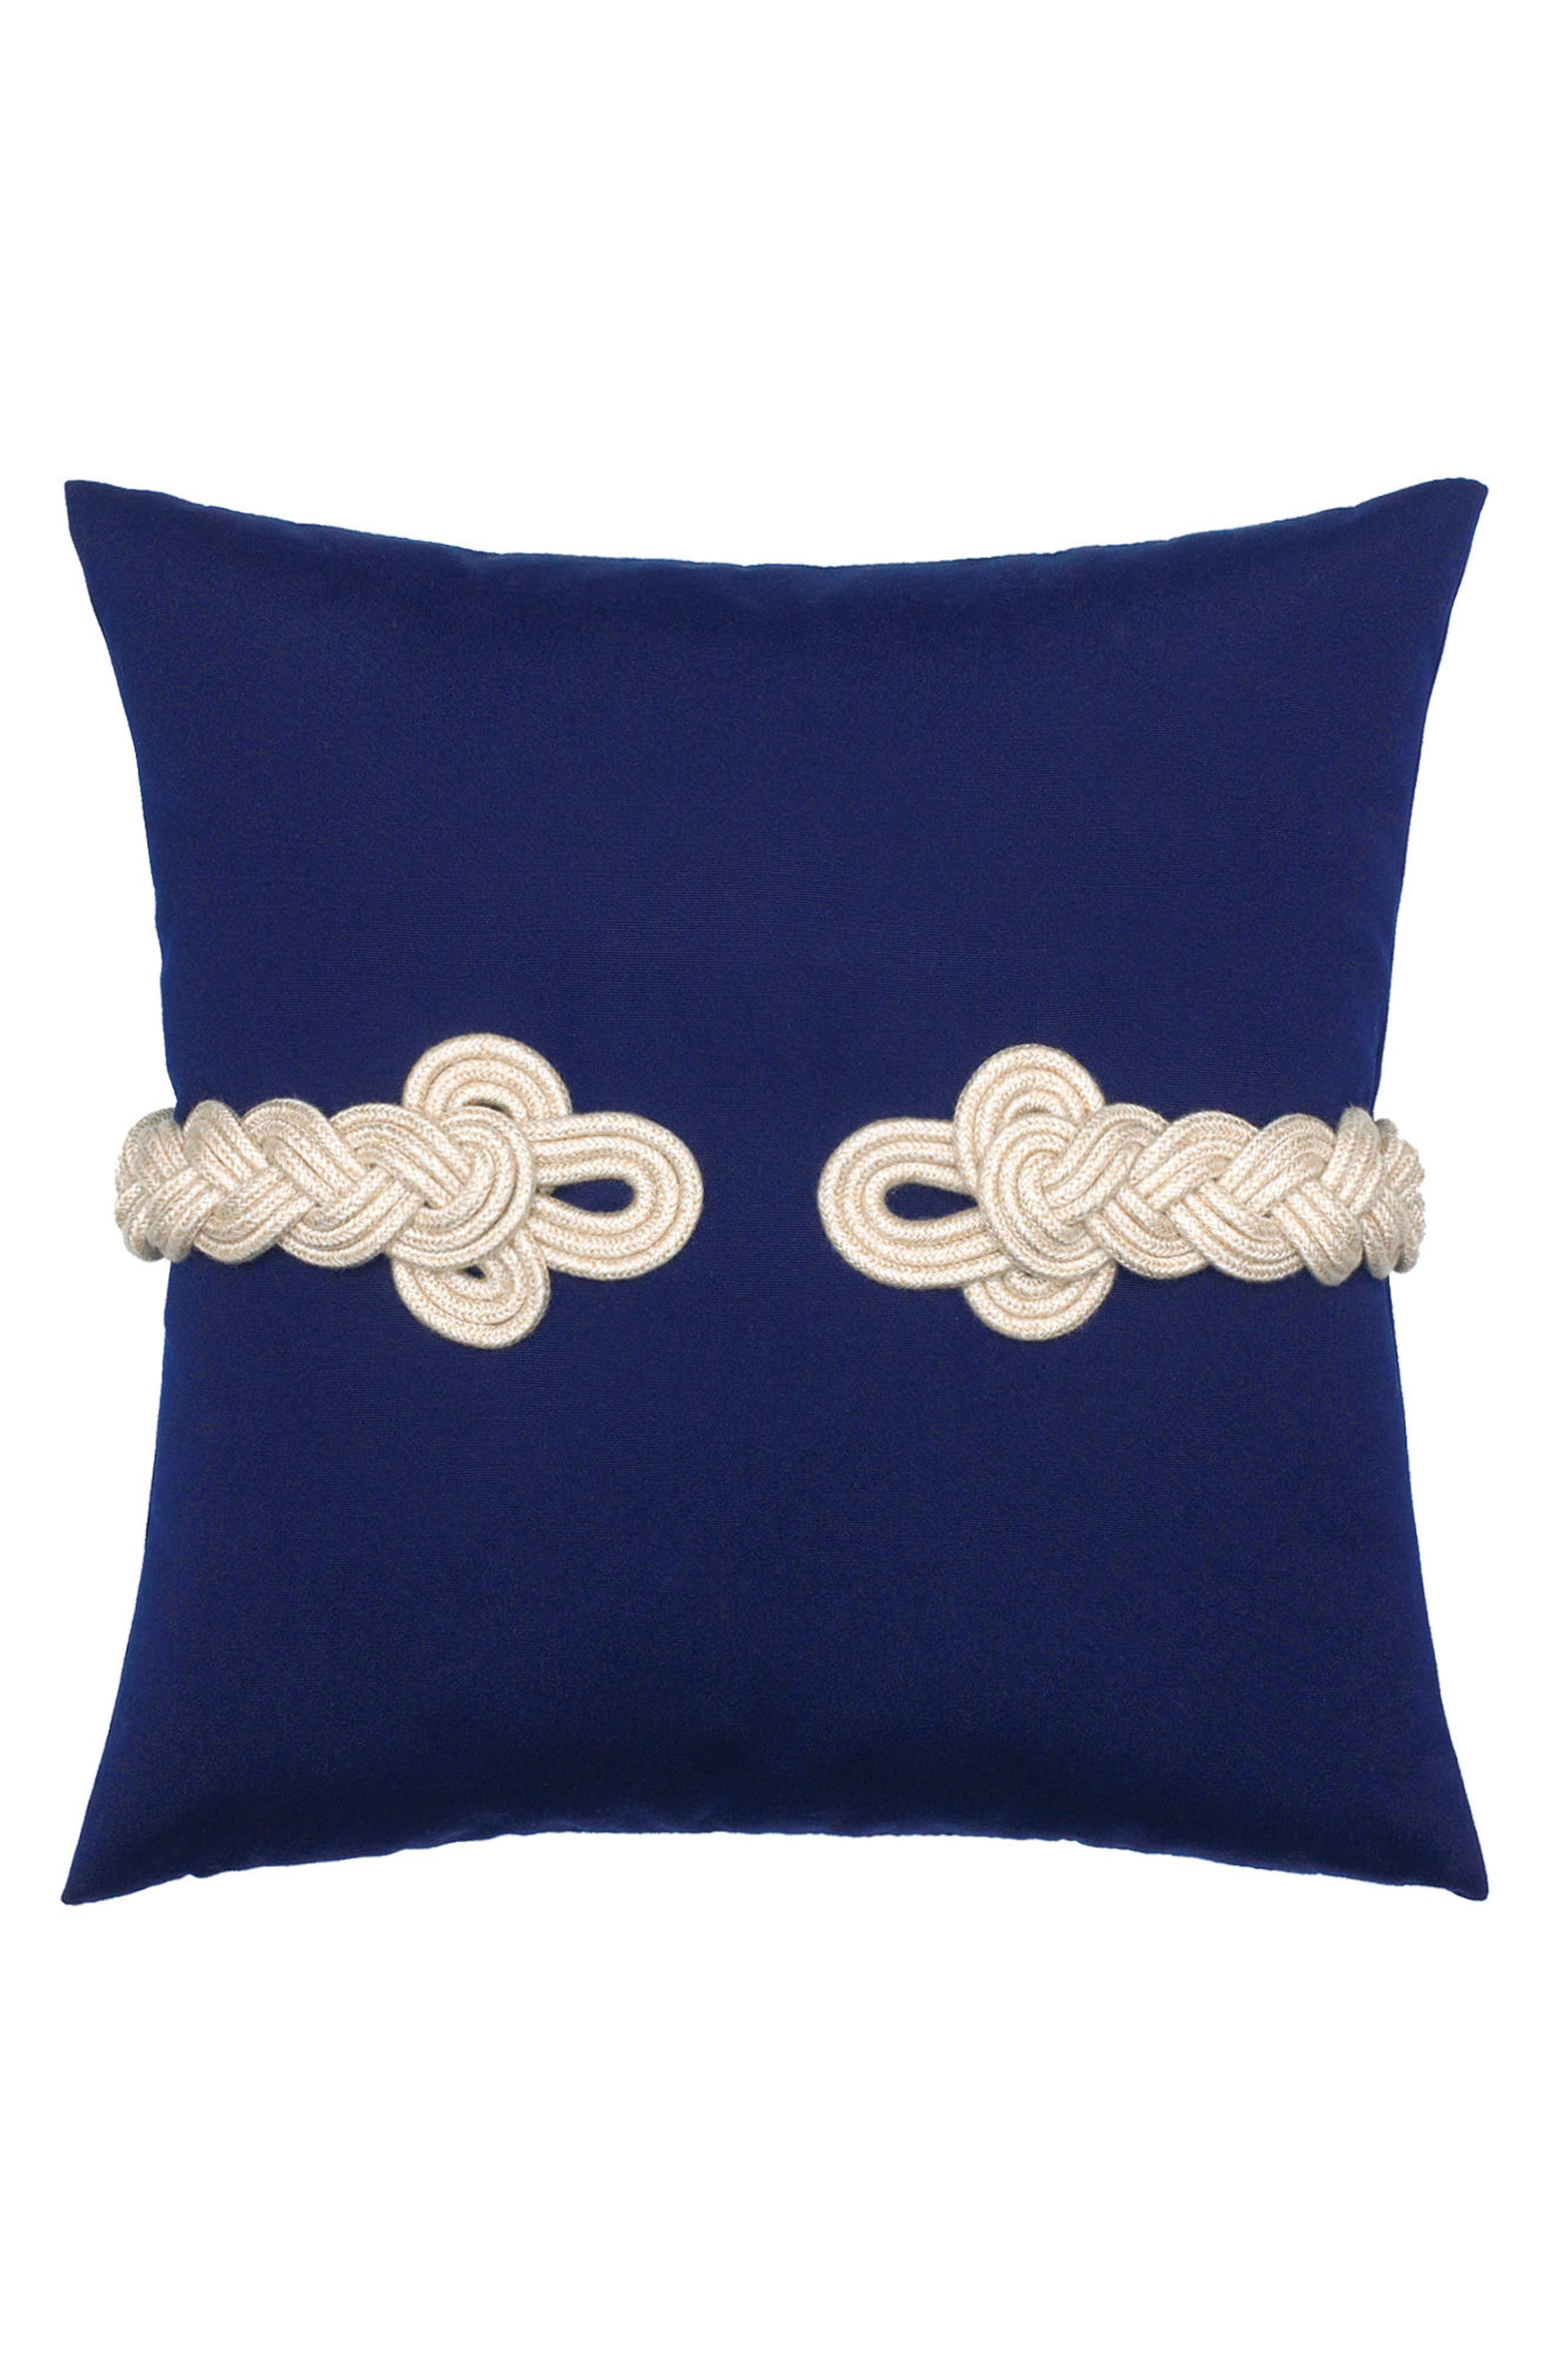 Navy Frogs Clasp Indoor/Outdoor Accent Pillow,                         Main,                         color, Blue